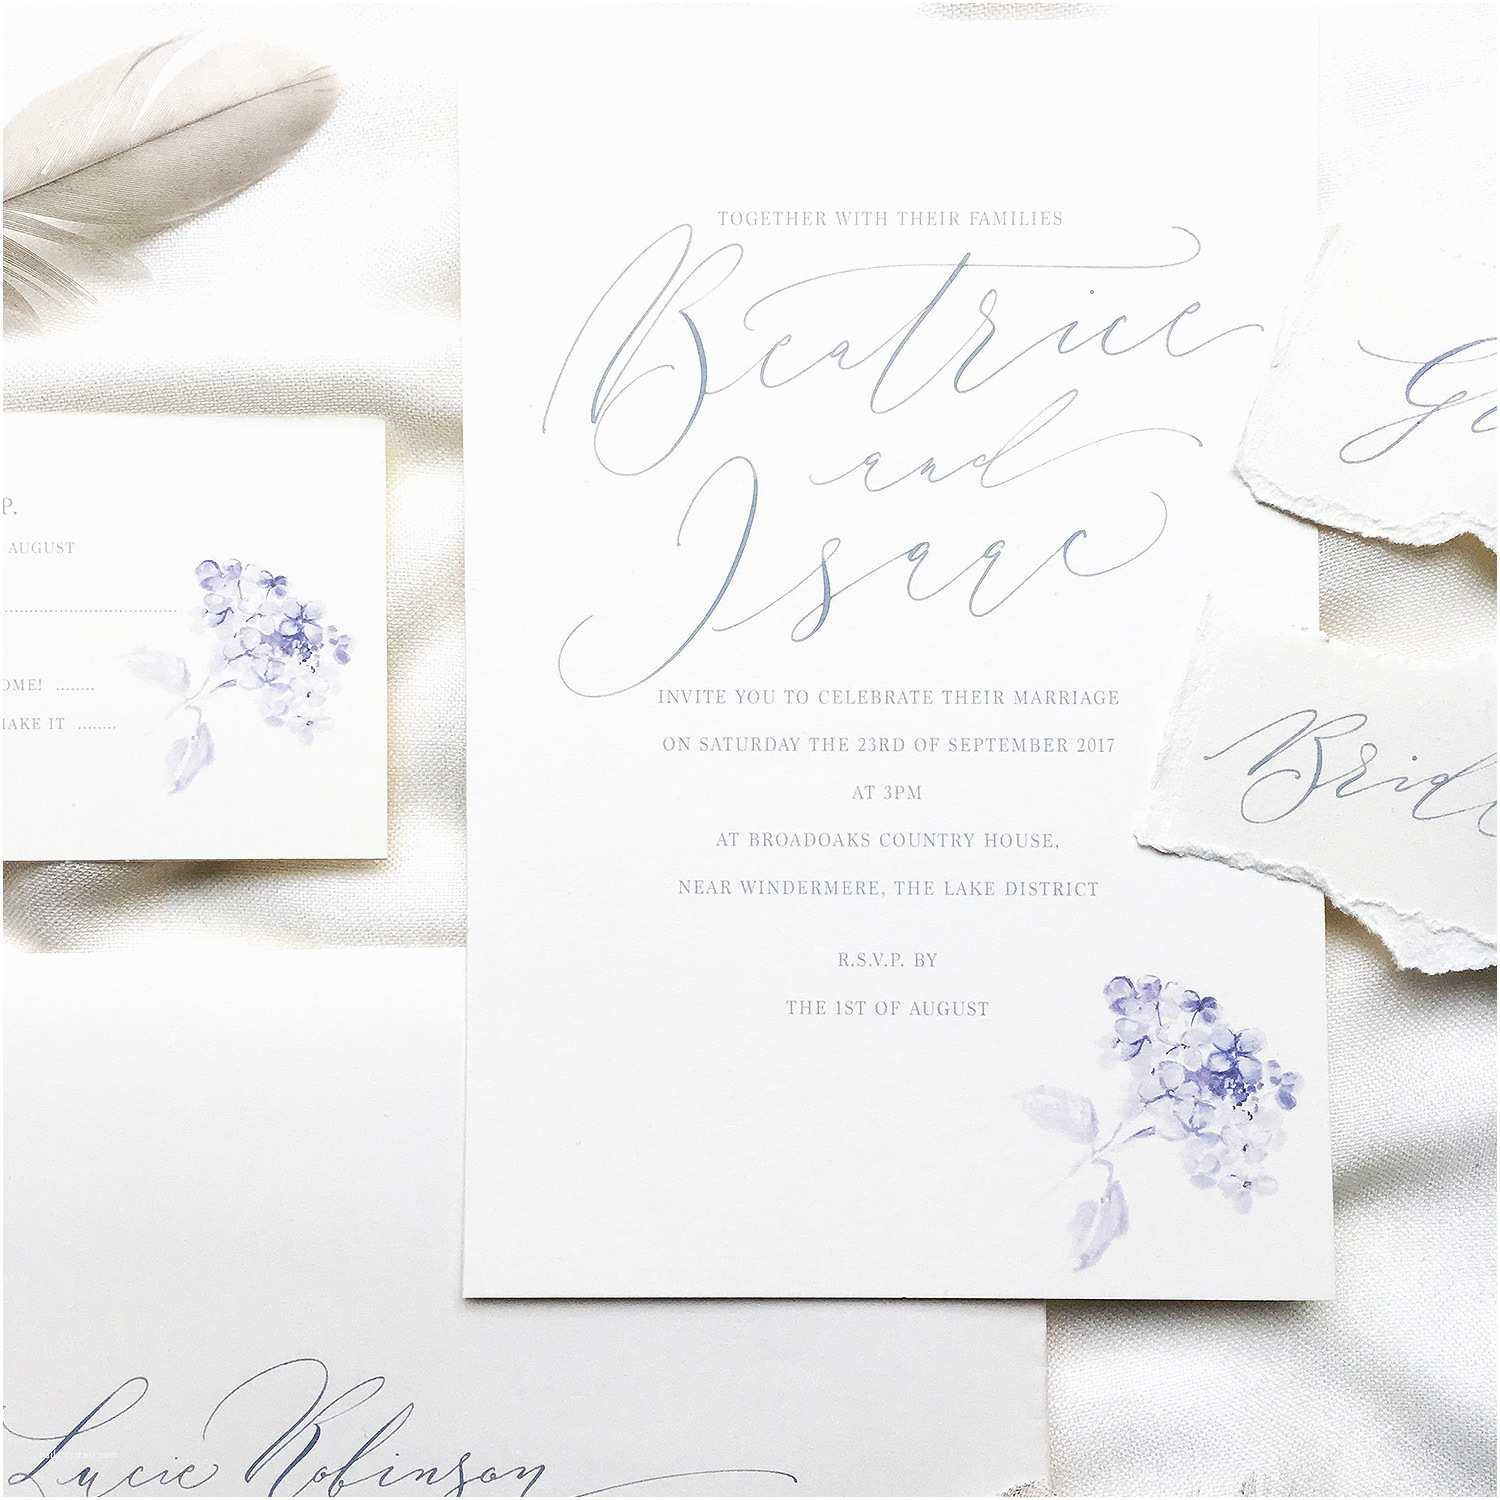 Illustrated Wedding Invitations Introducing Hydrangea – A Charming and Pretty Illustrated